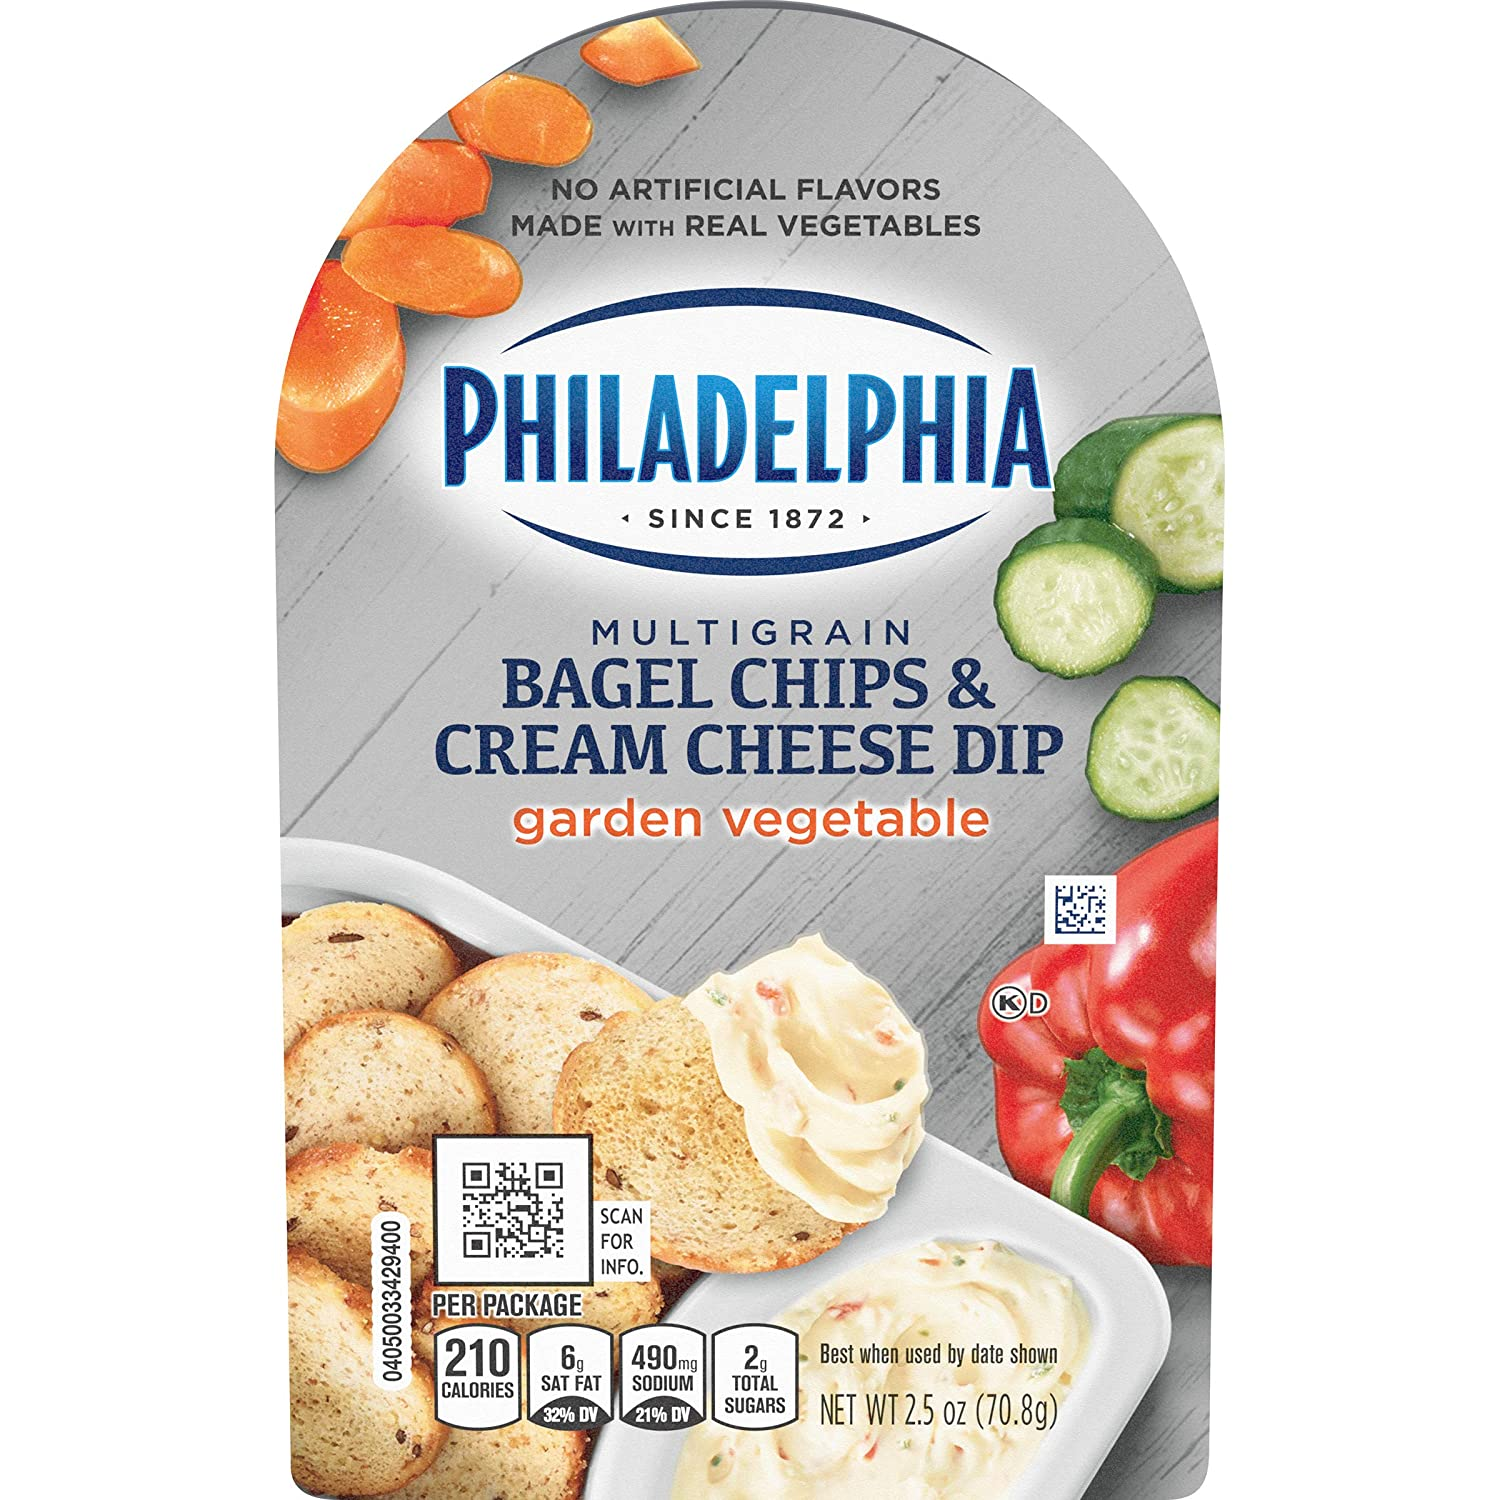 Philadelphia Bagel Chips & Garden Vegetable Cream Cheese Dip (2.5 oz Package)